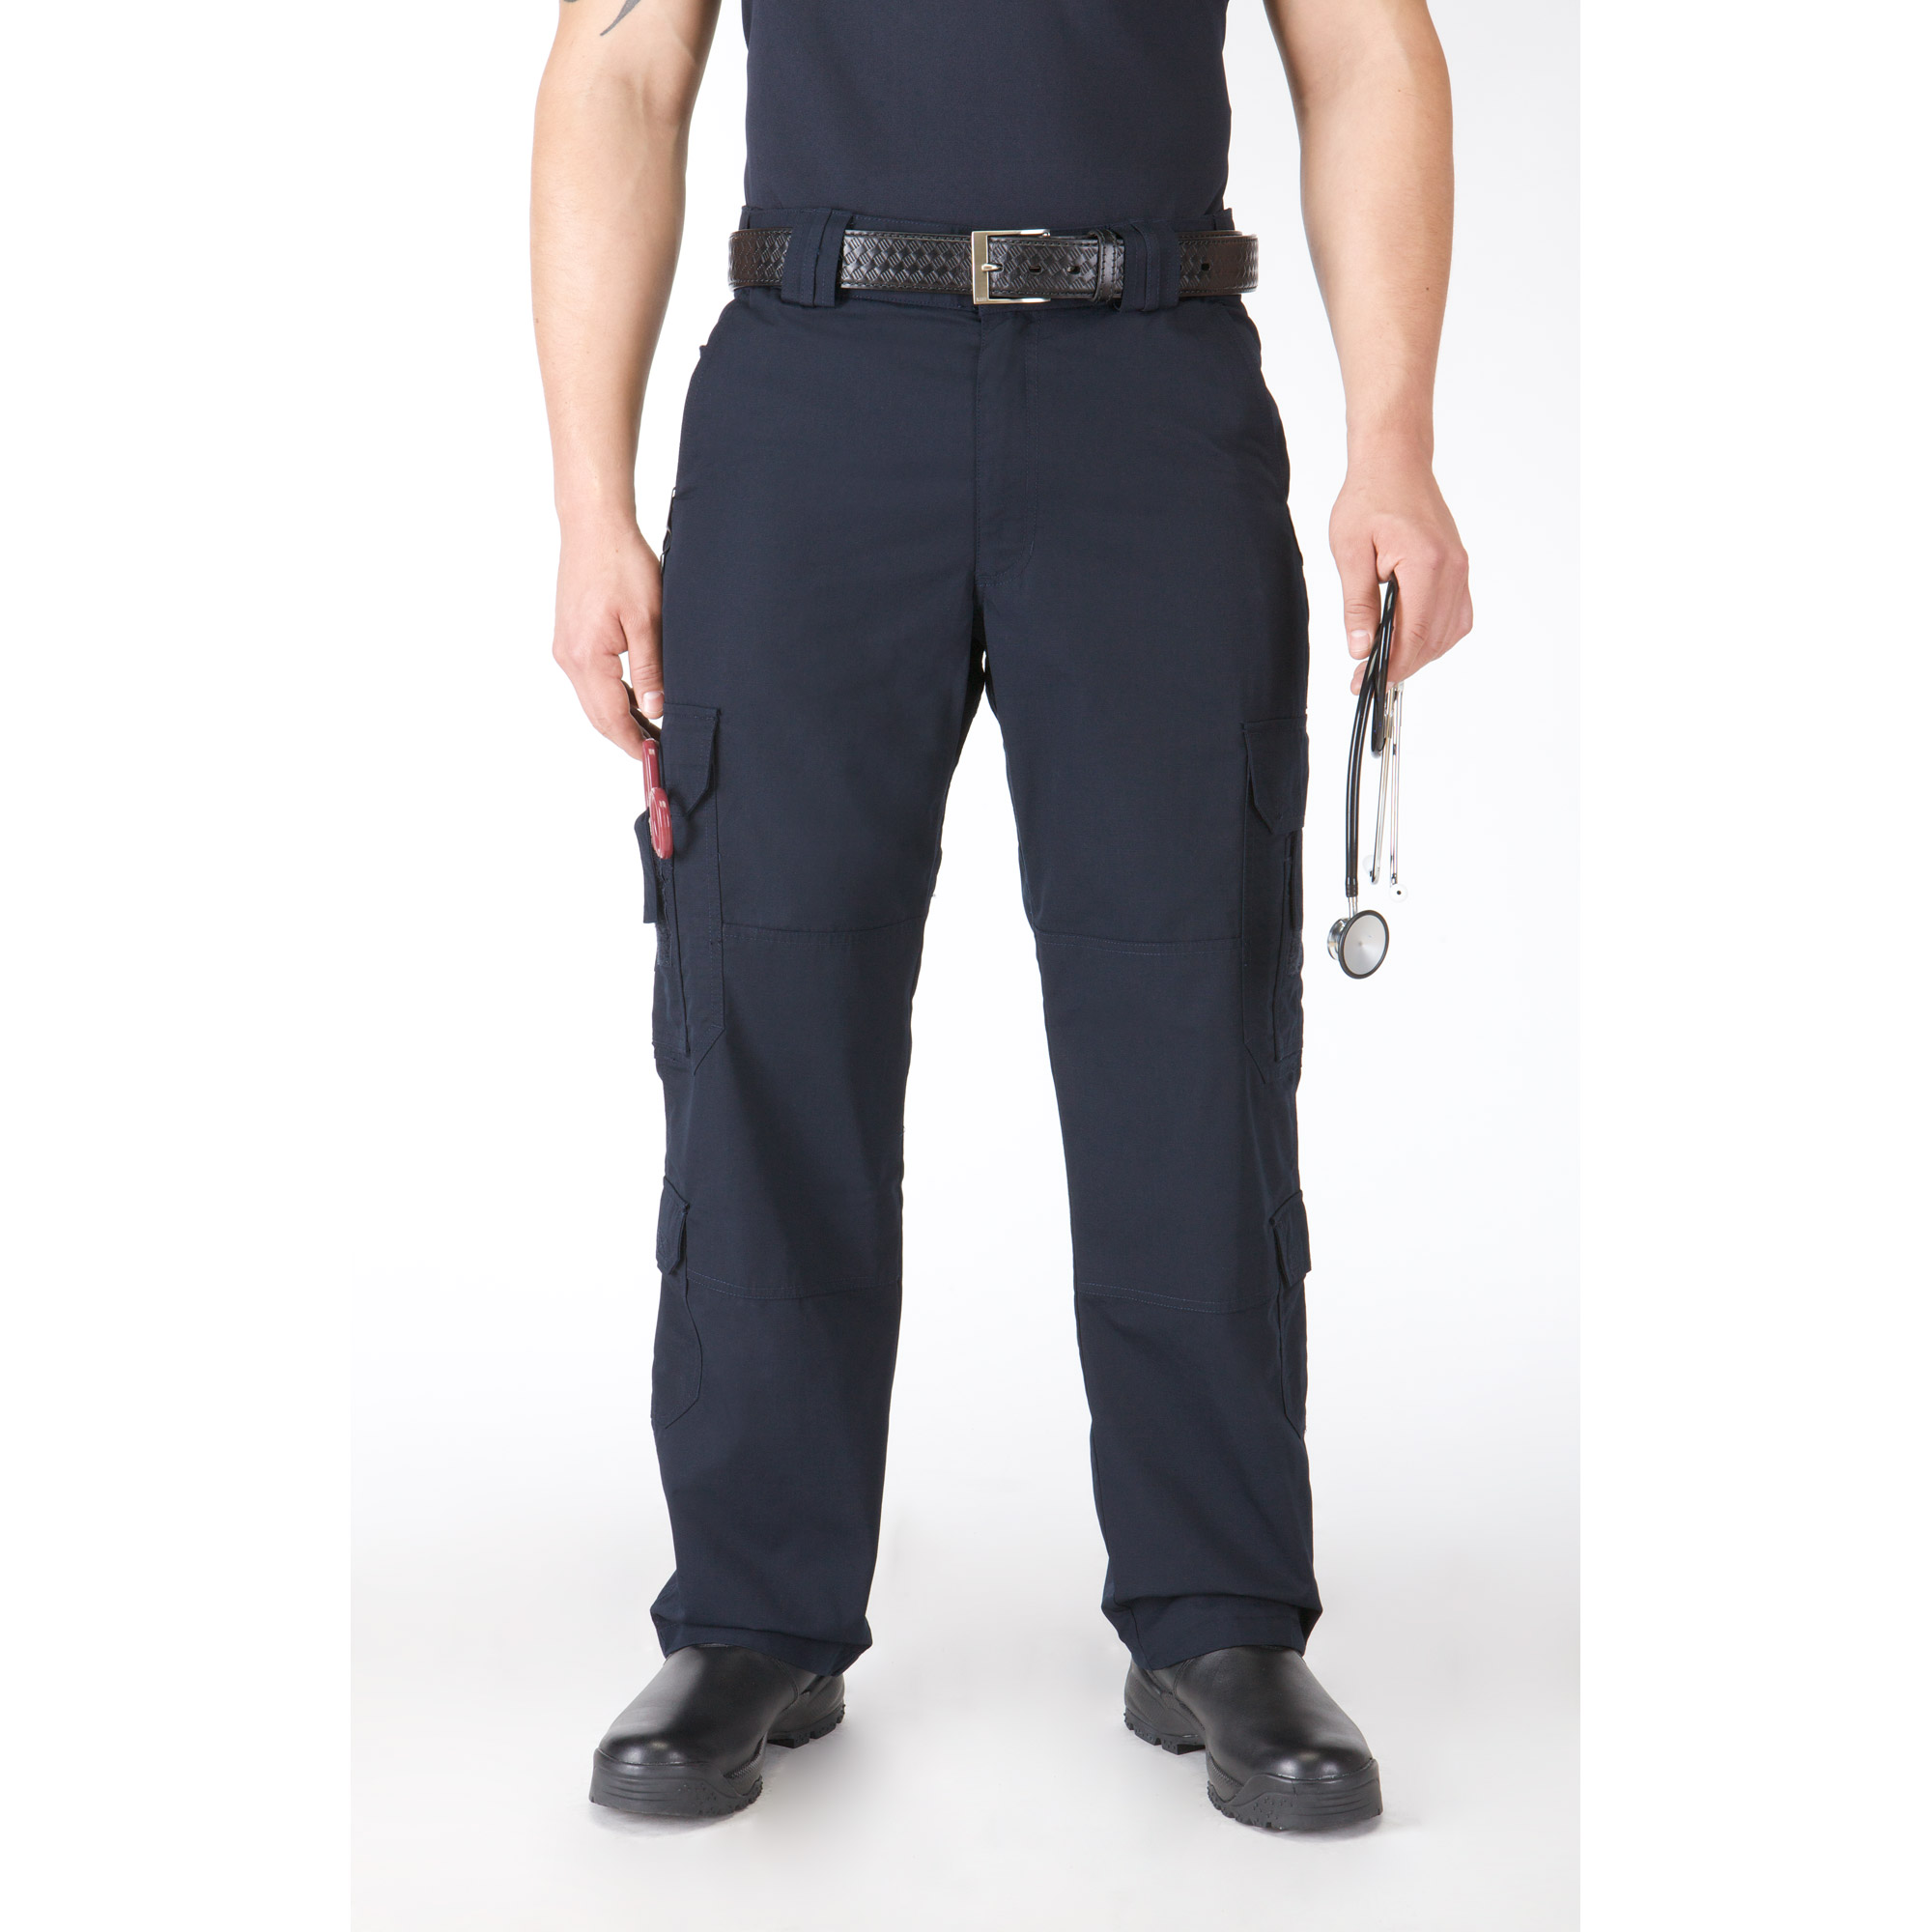 5.11 Tactical MenS Taclite Ems Pant-